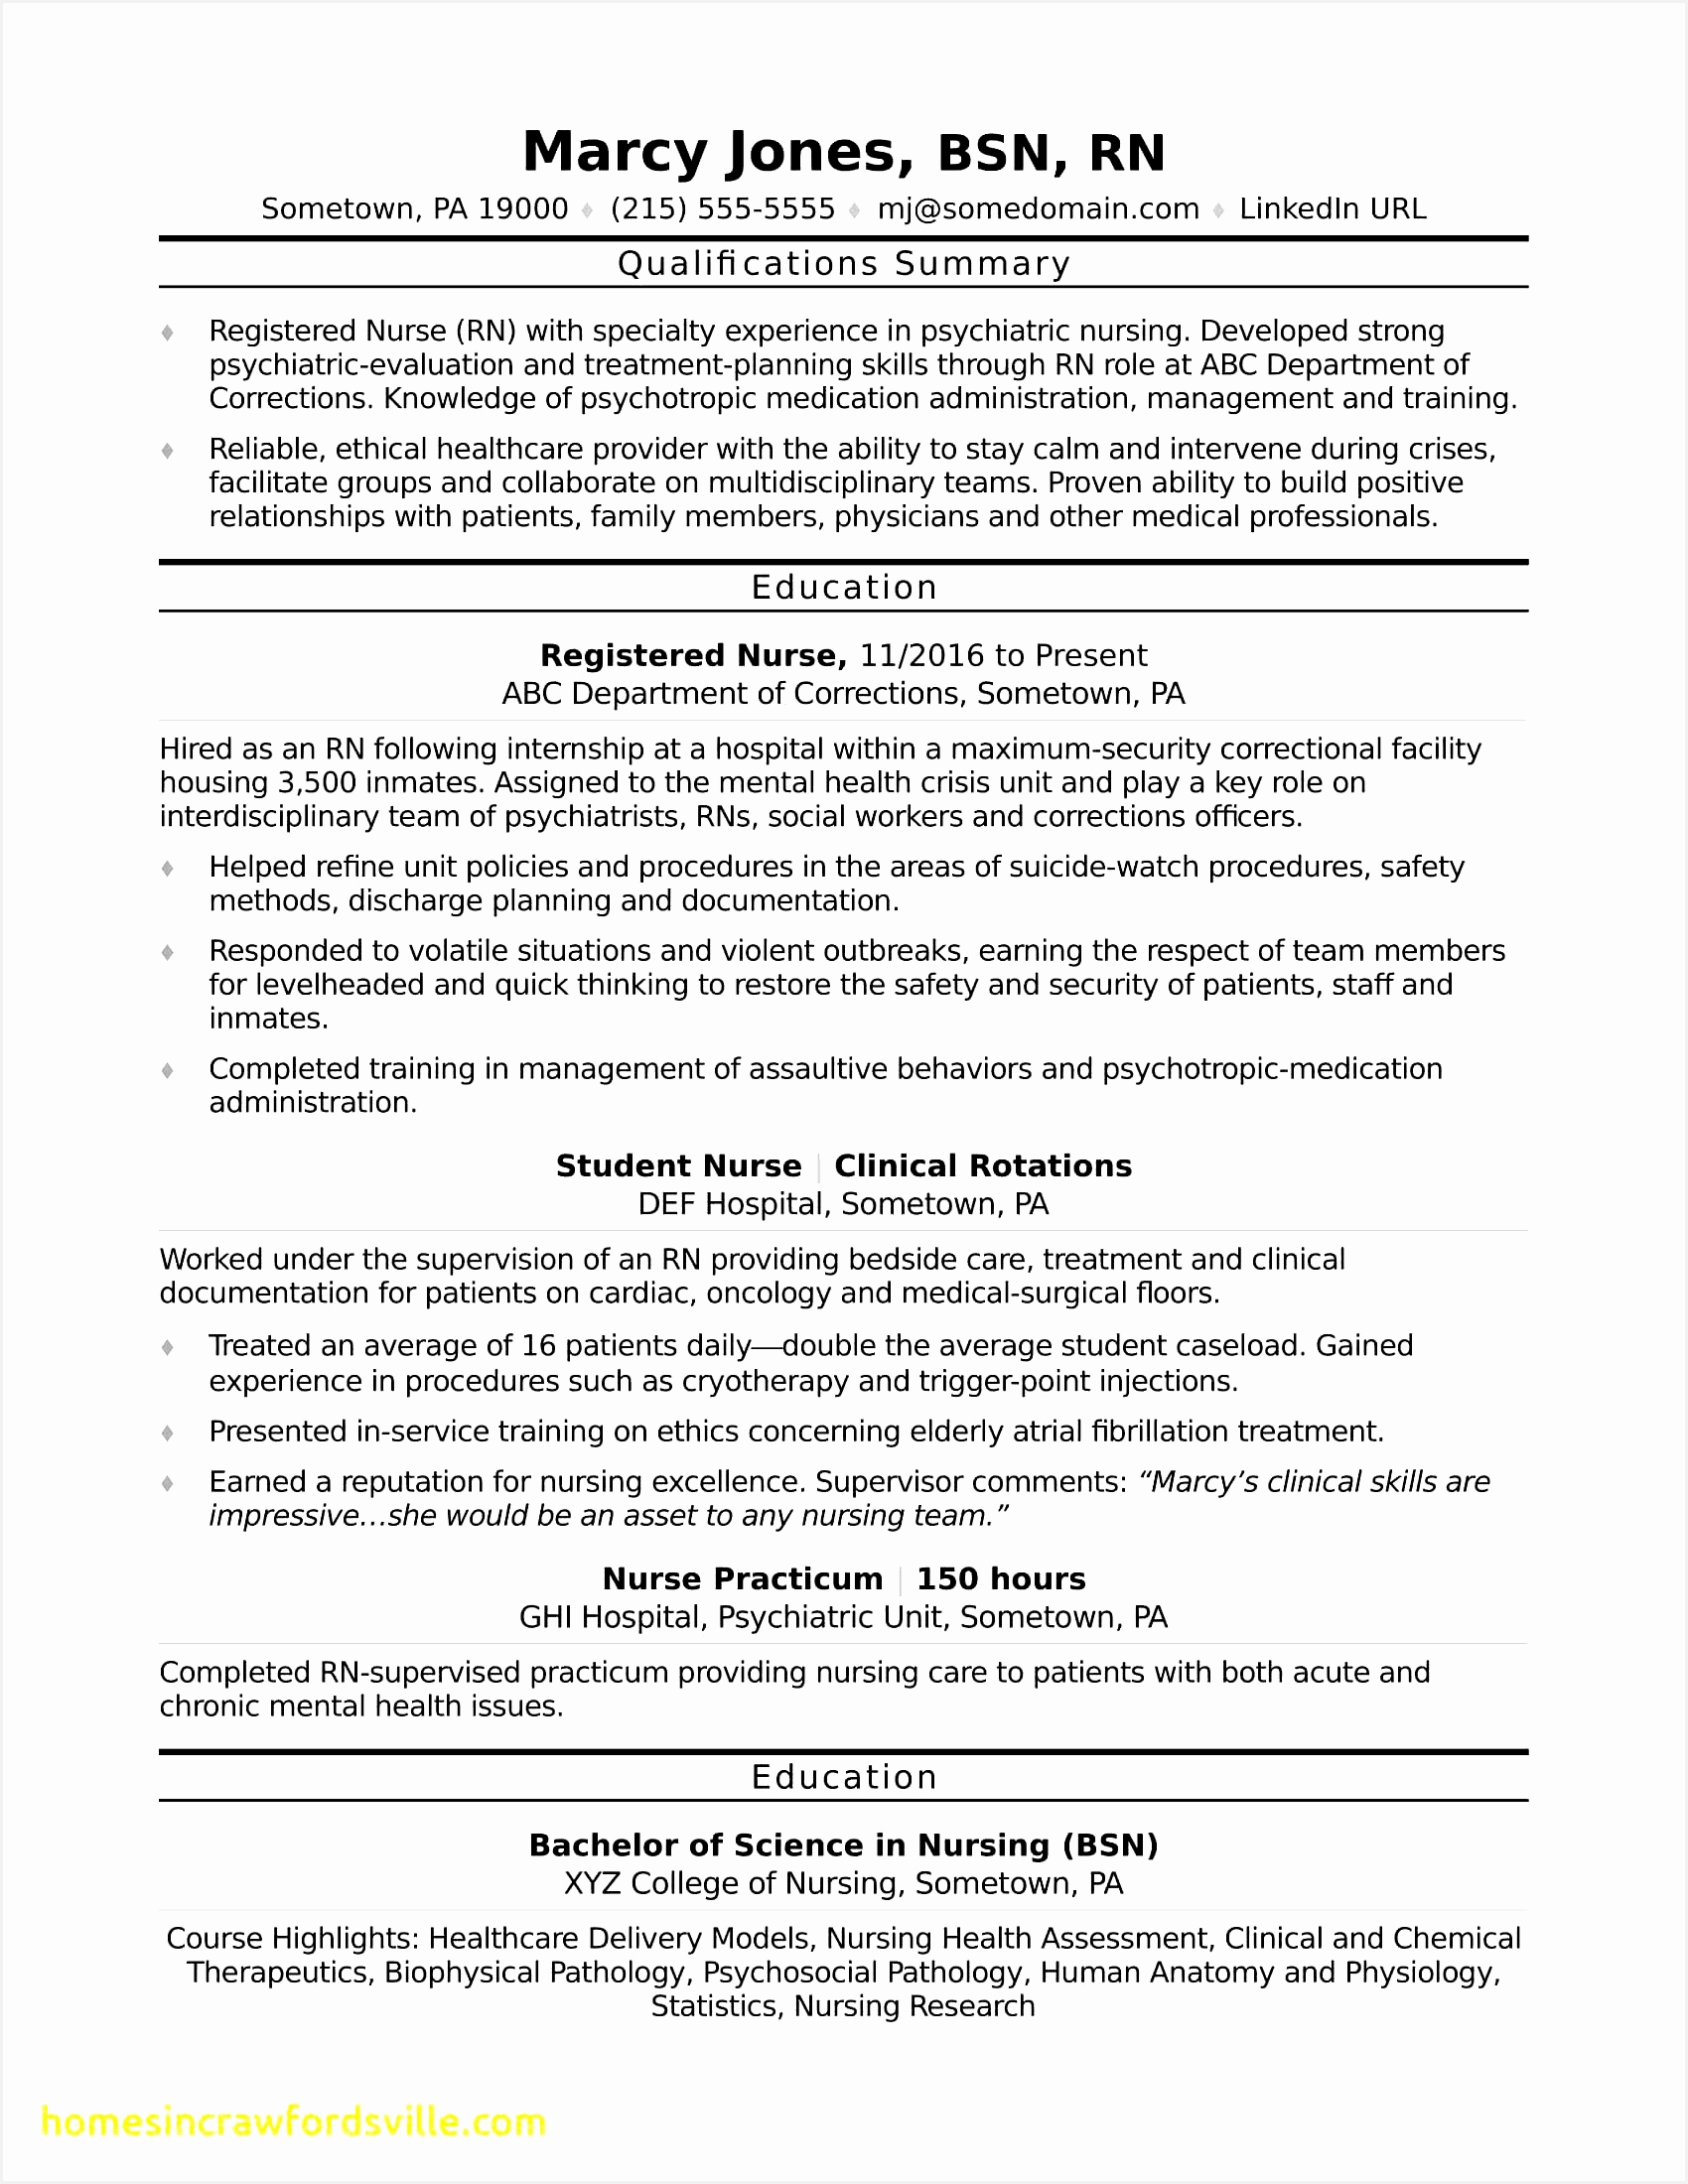 Rn Resume Sample Beautiful Registered Nurse Rn Resume Sample Monster22001700